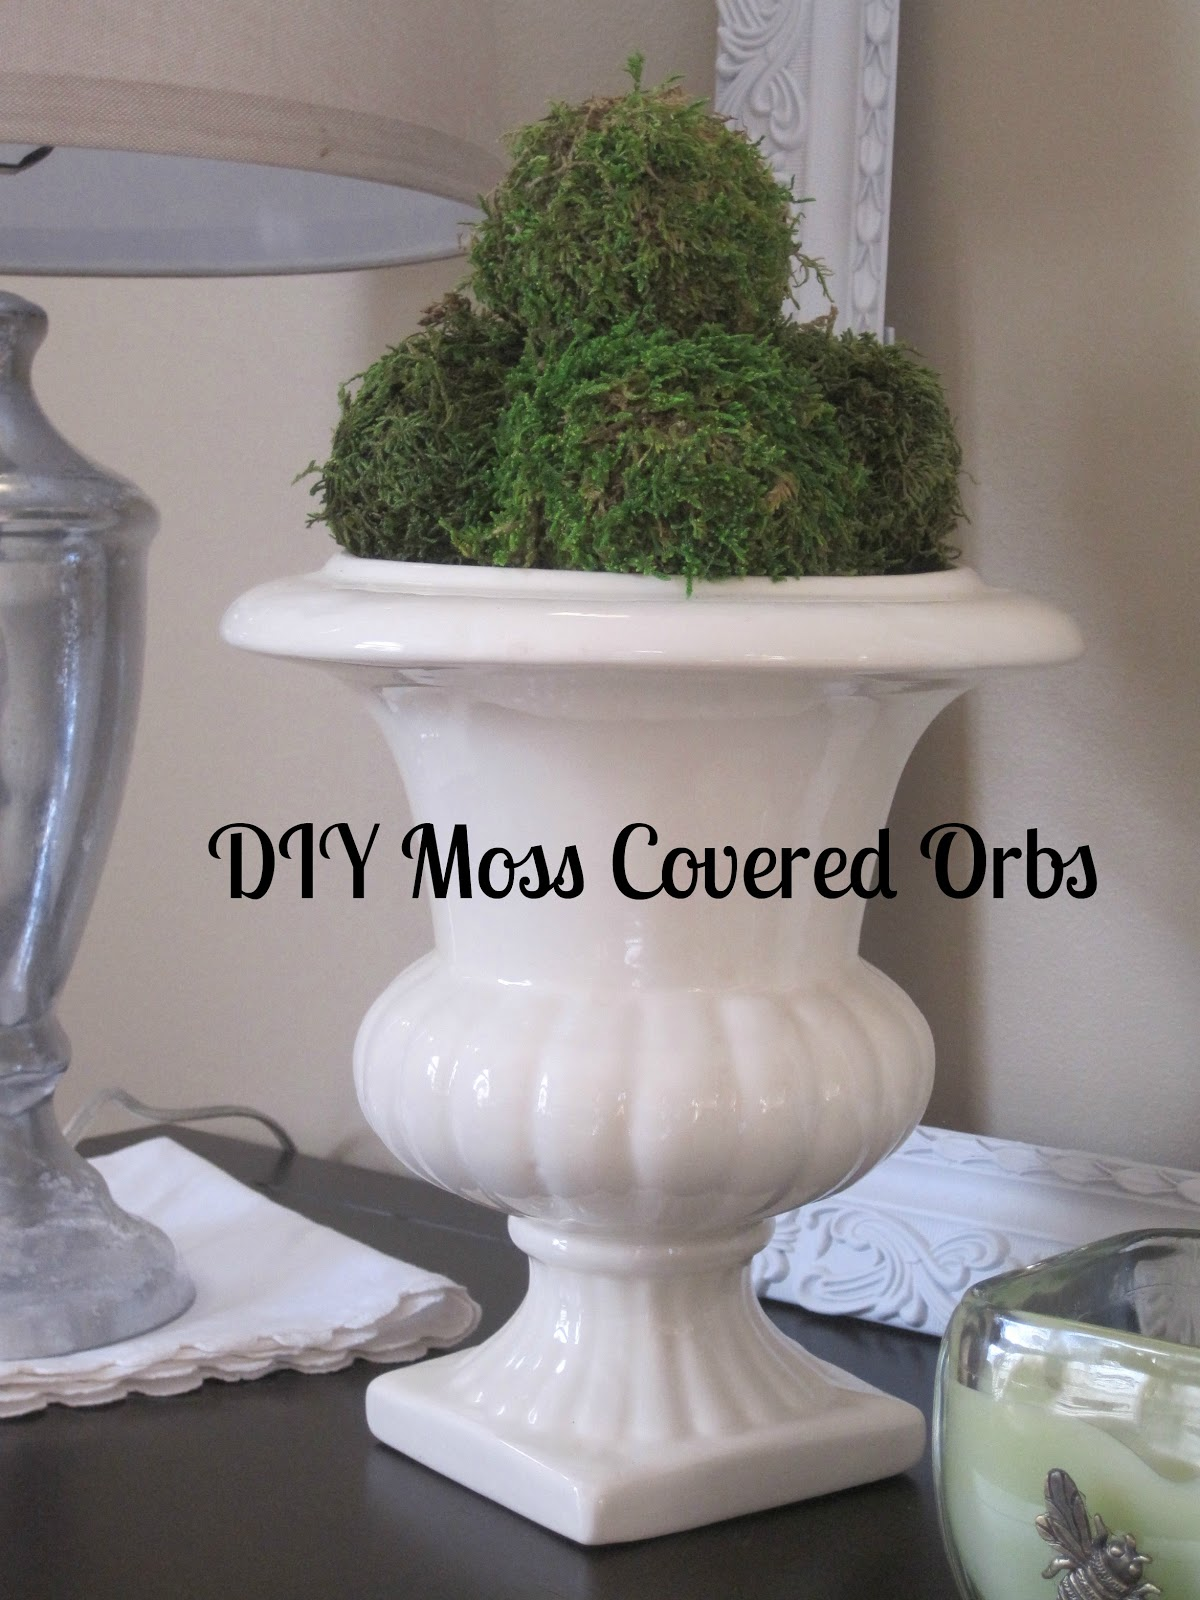 10 Ways To Decorate With Green Moss: Decorated Chaos: DIY Moss Covered Orbs